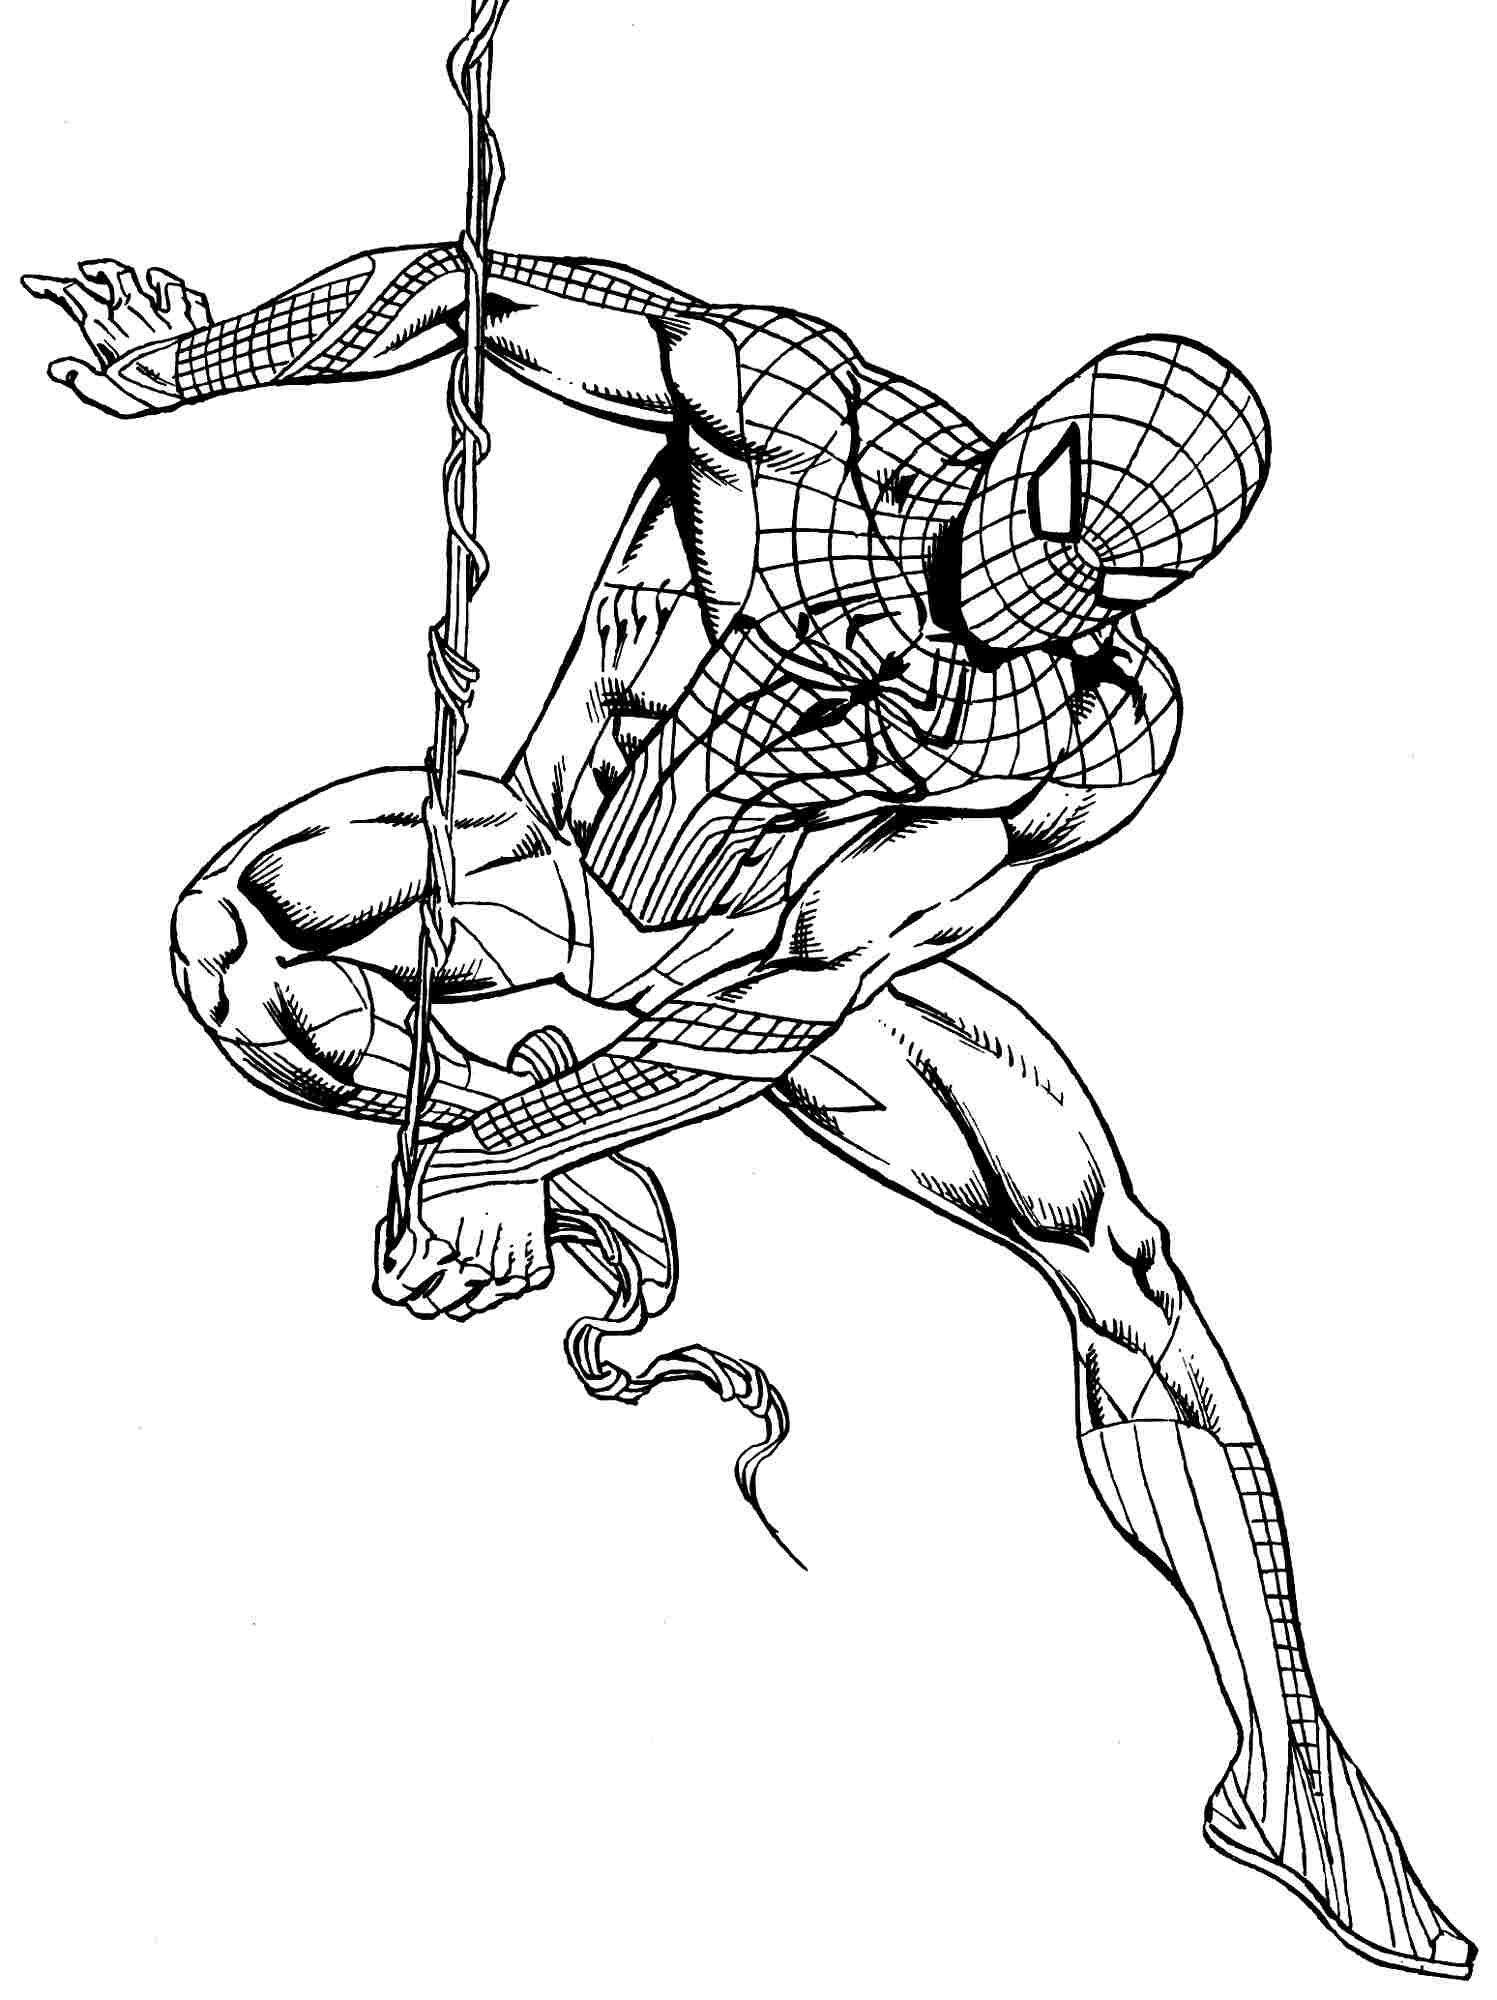 Download or Print the Free Spiderman On Rope Coloring Page and find ...